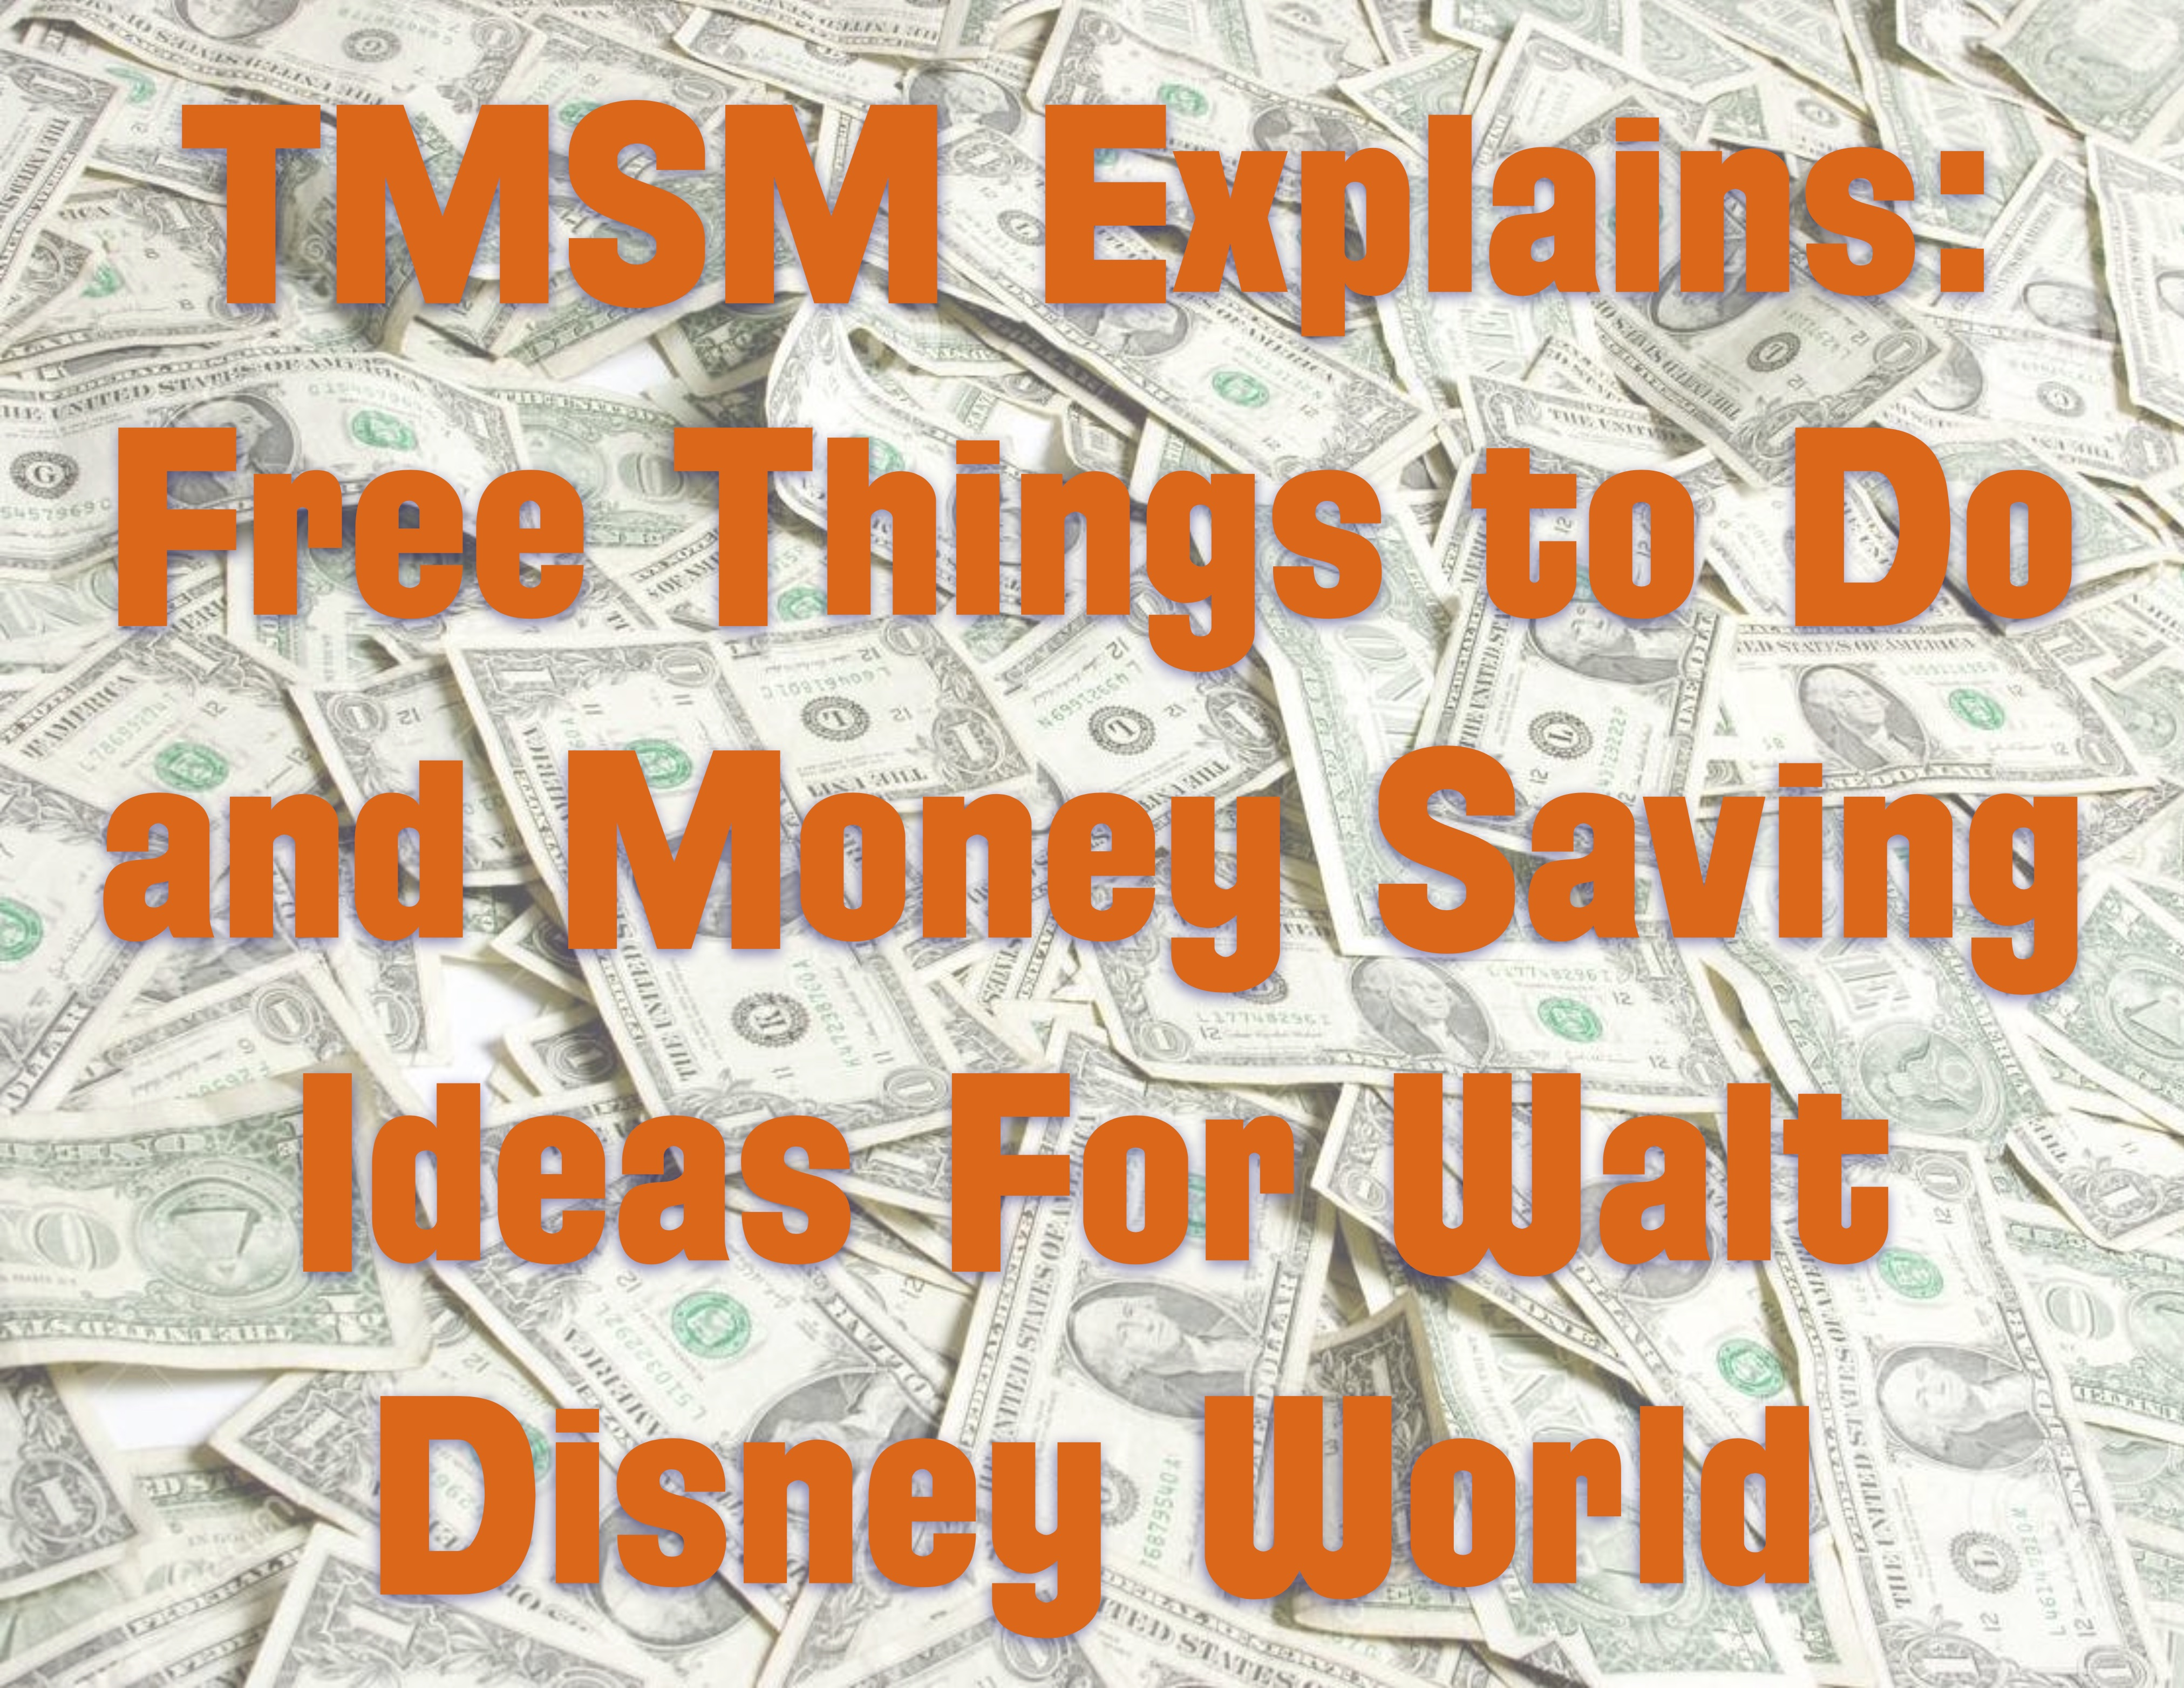 TMSM Explains: Free Things to Do and Money Saving Ideas For Walt Disney World Part 3 1